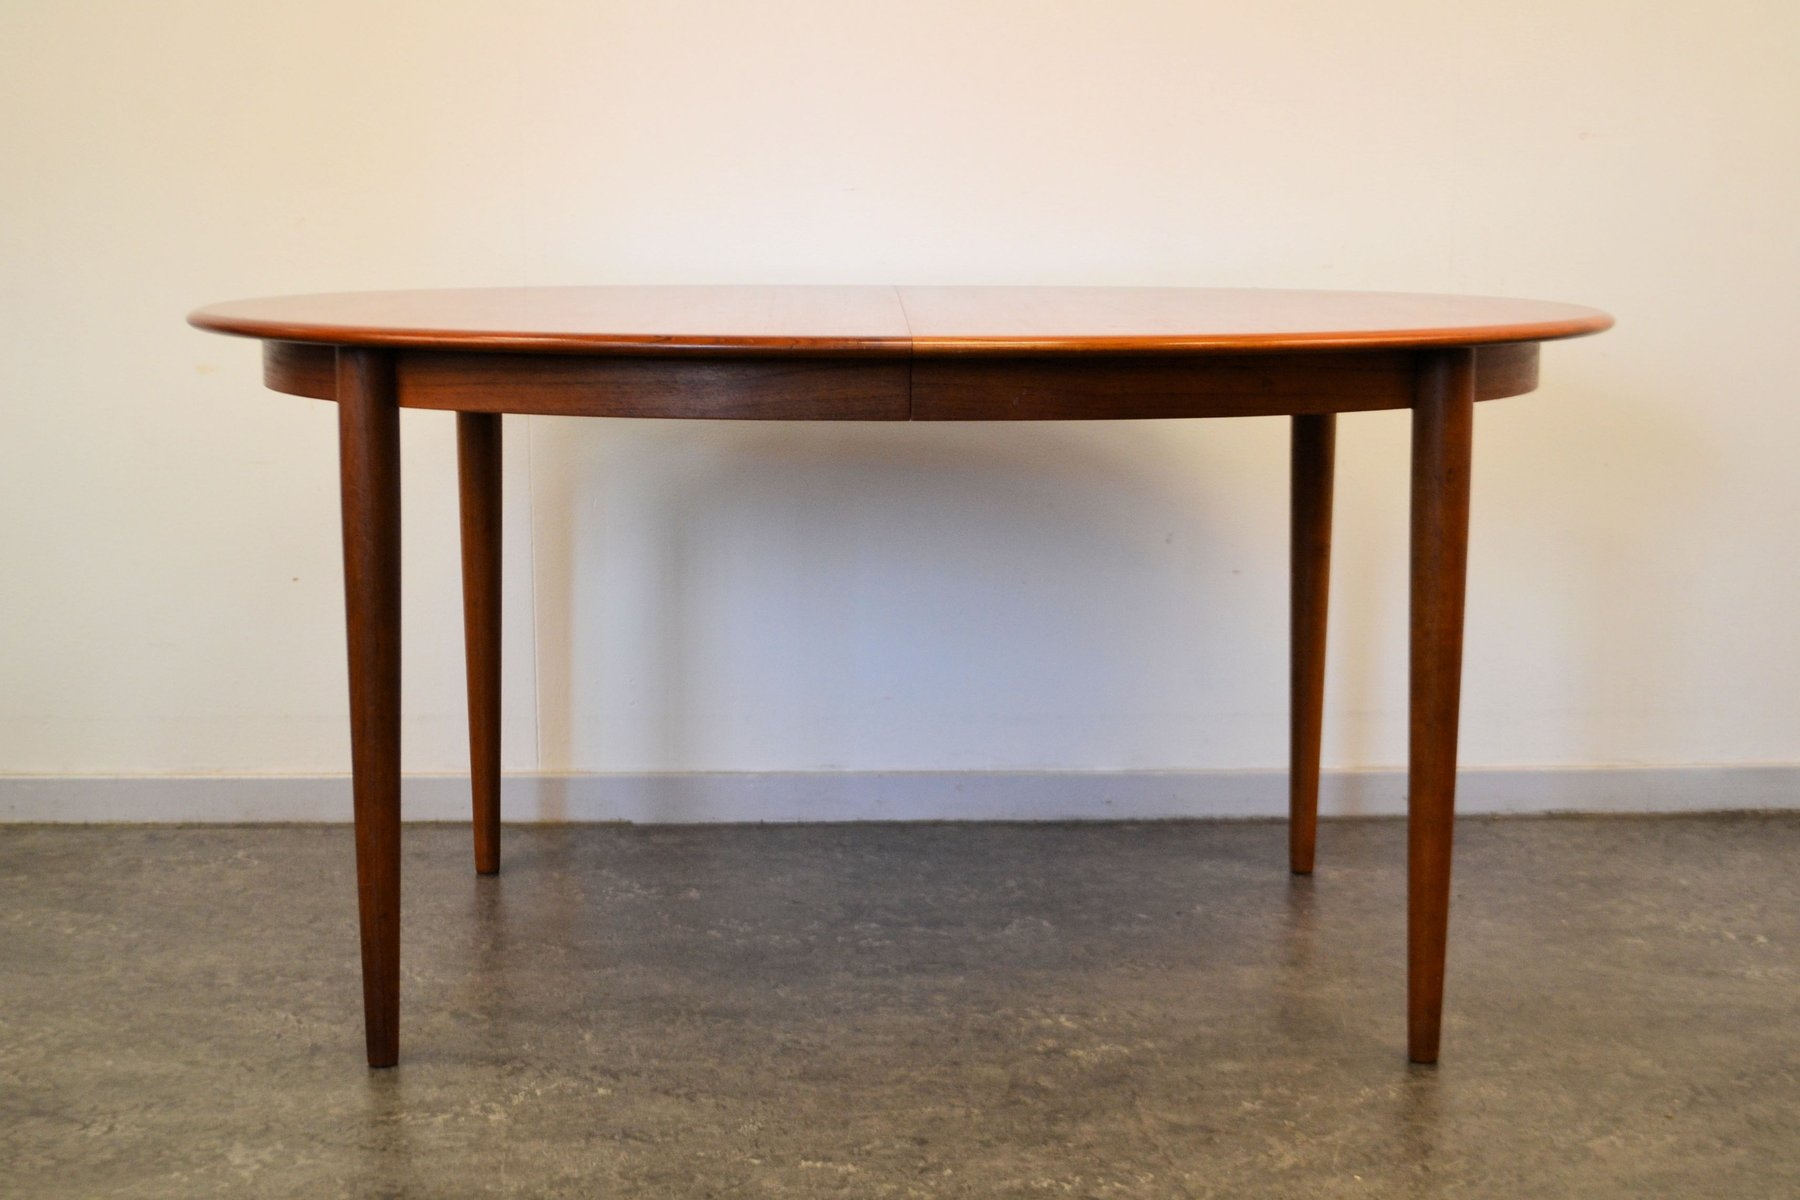 Table de salle manger mid century ovale extensible en for Table de salle a manger 3 metres